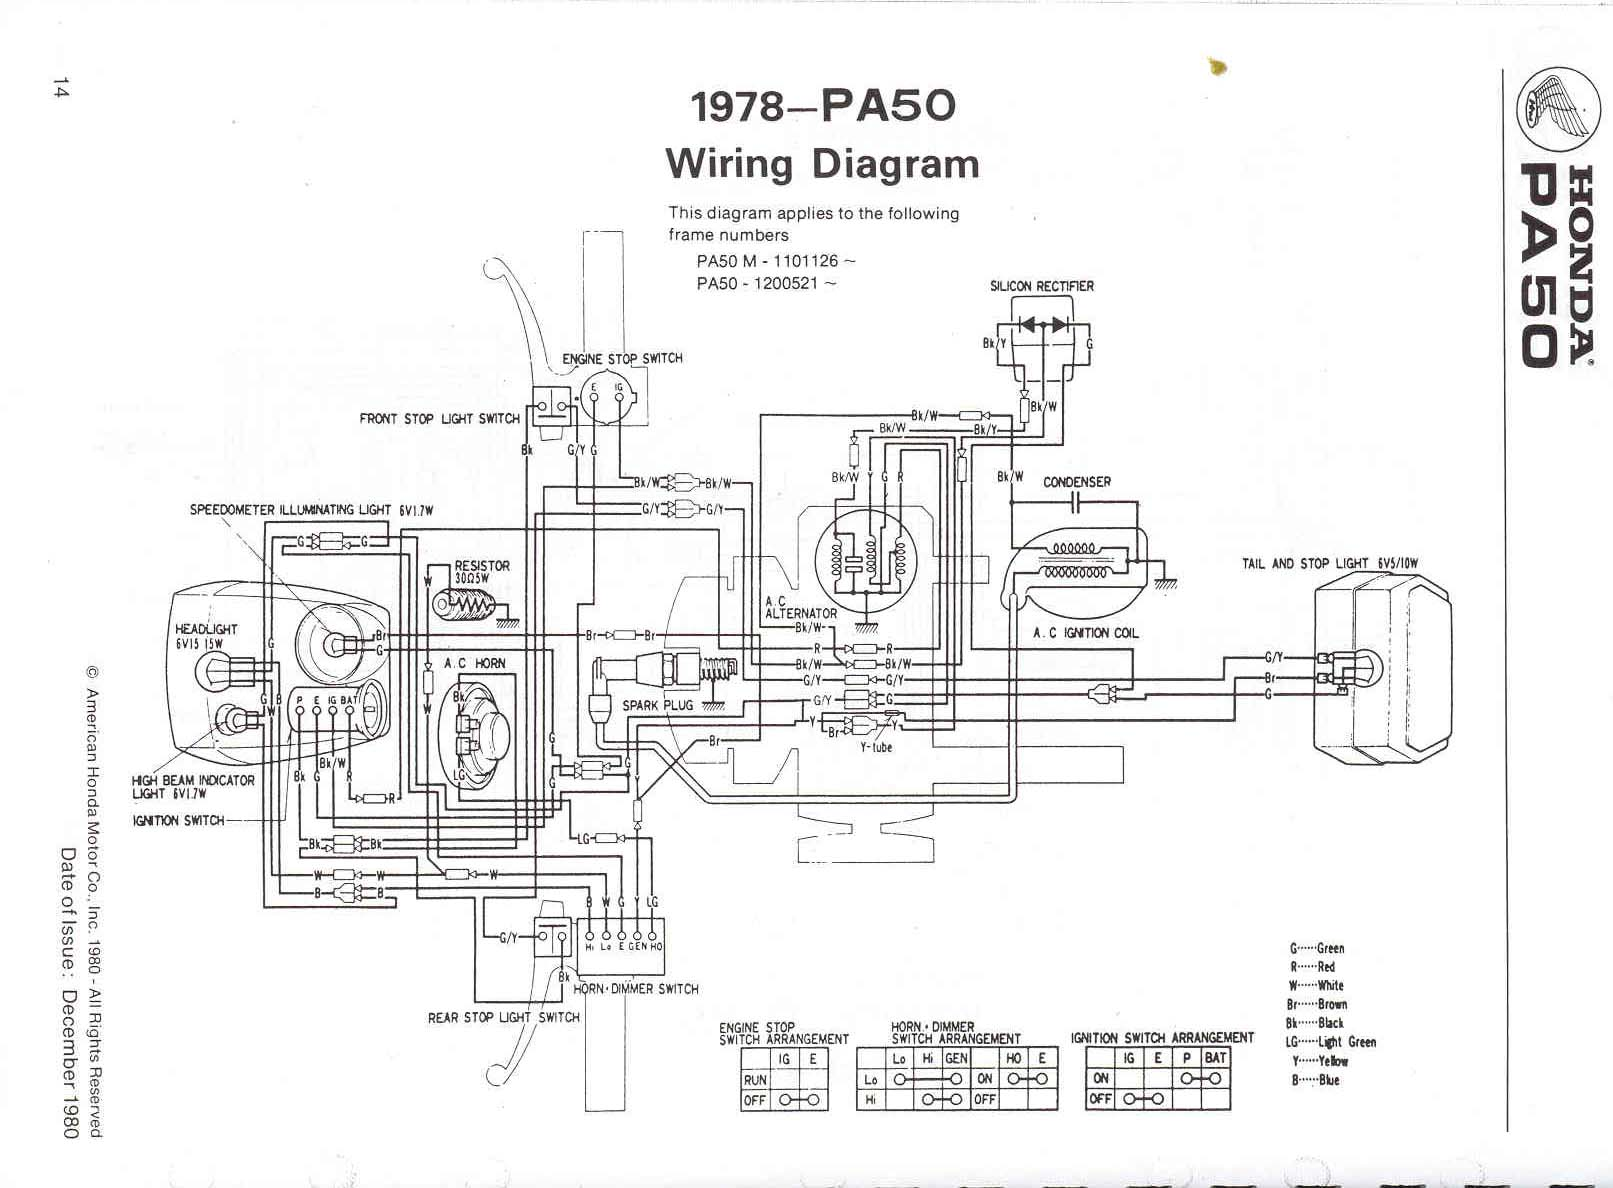 wiring diagram honda pa 50 wiring diagram for pa system re: wiring diagram 1980 honda pa 50 [by mrmacabre] — moped ...